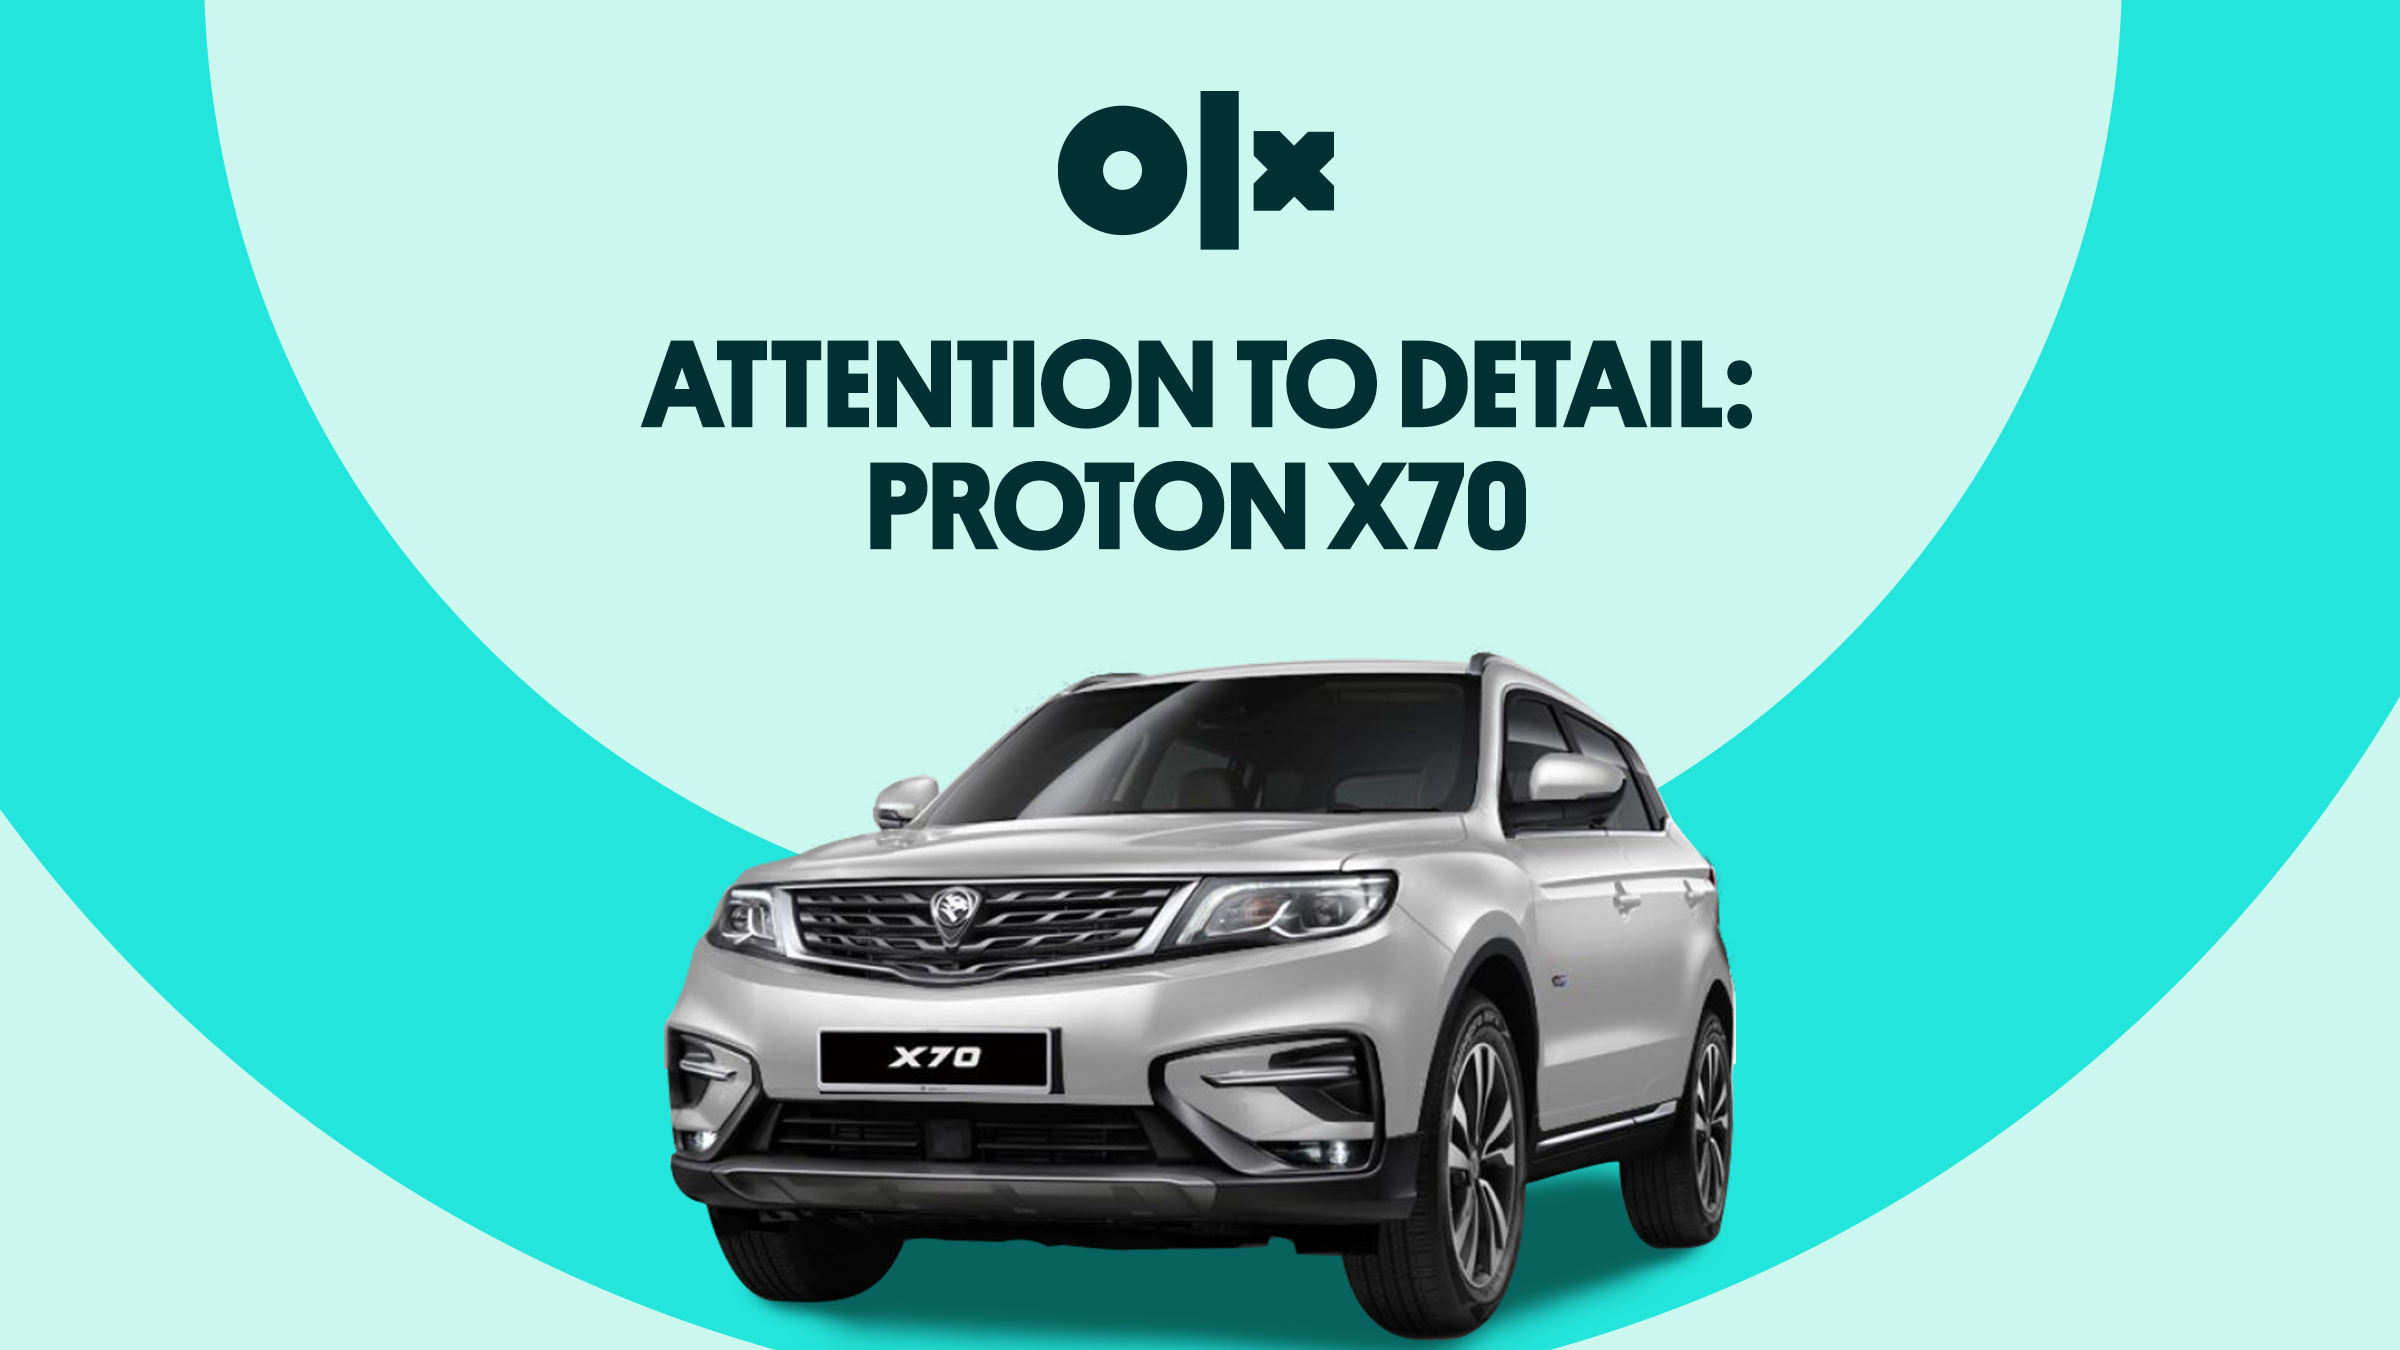 Attention to Detail: Proton X70